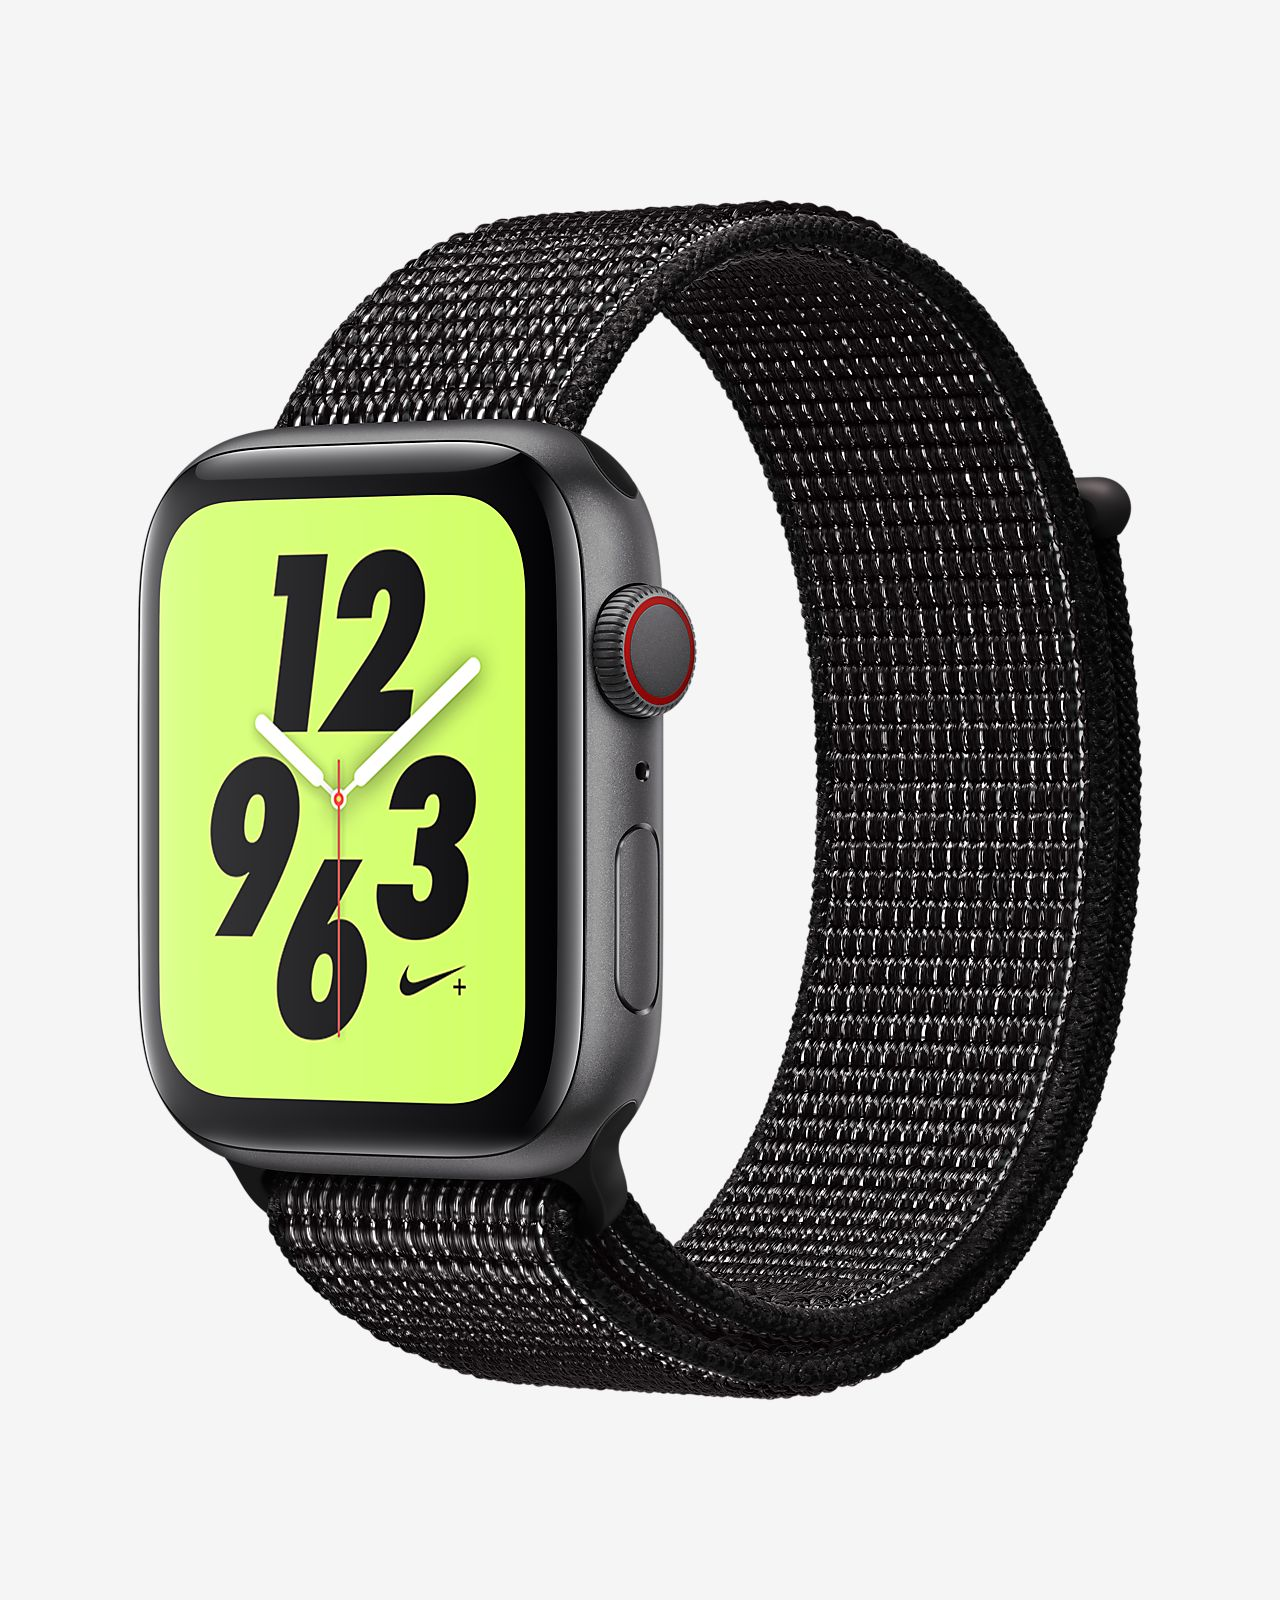 online store 4a79b 03d0d ... Apple Watch Nike+ Series 4 (GPS + Cellular) with Nike Sport Loop 44mm  Sport